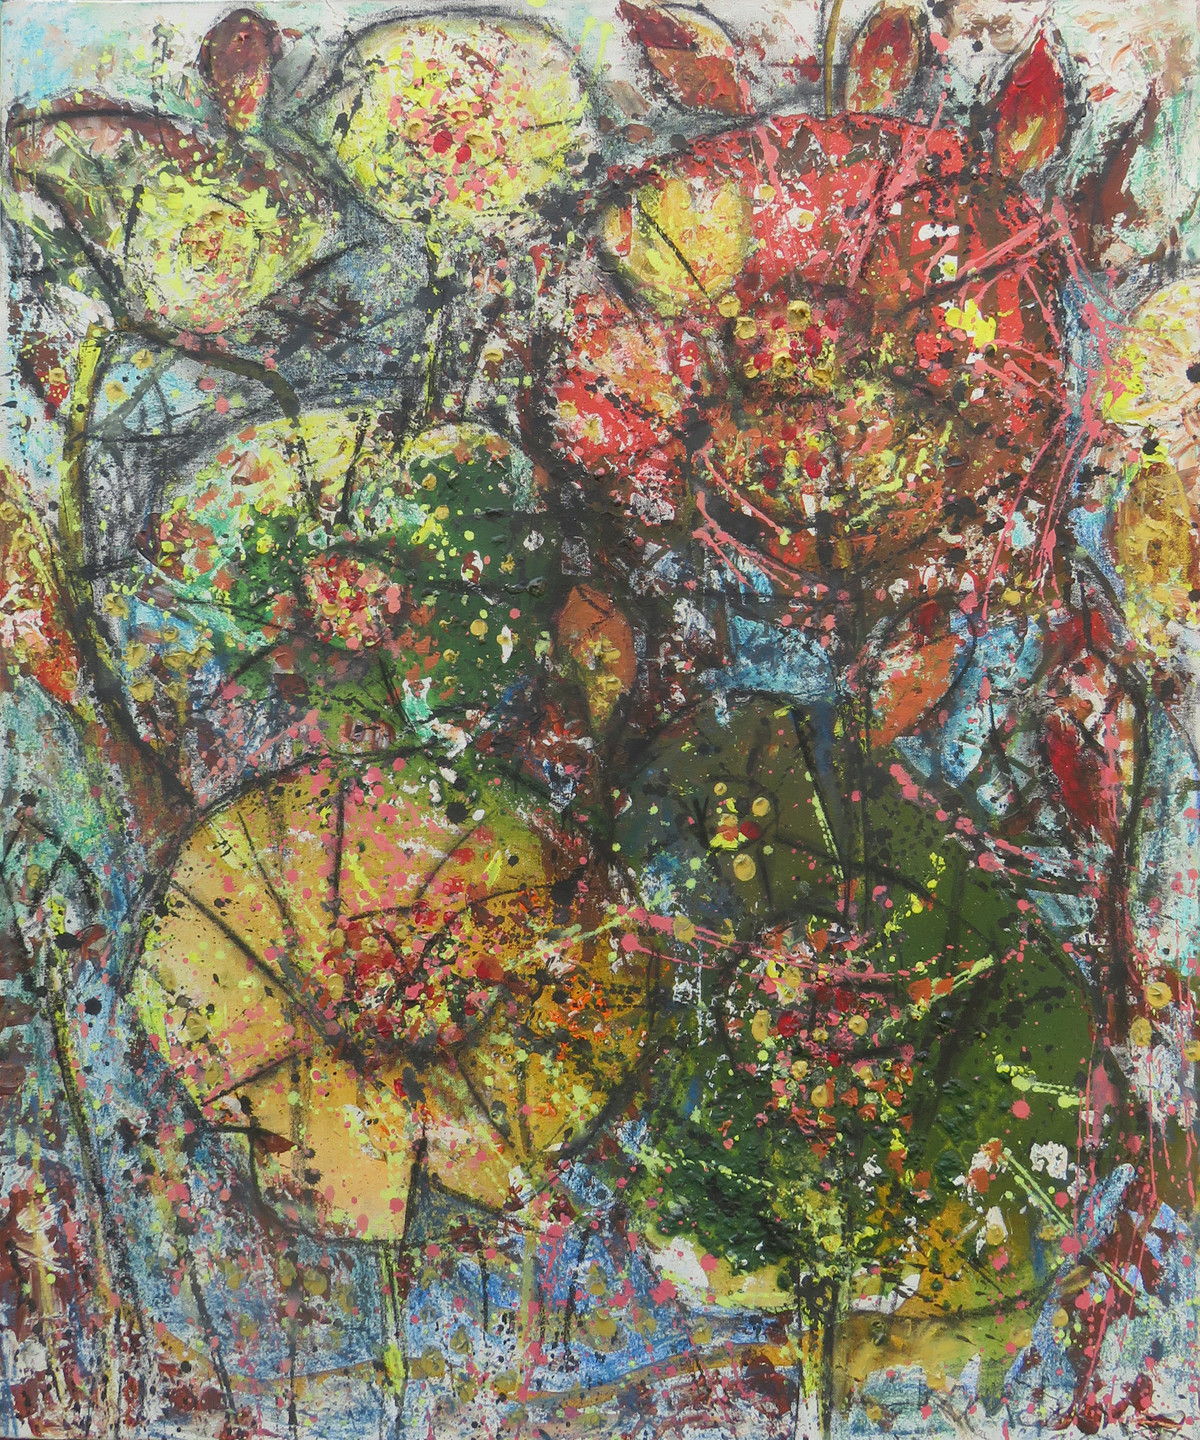 LOTUS LEAVES 2 by Chandana khan, Abstract Painting, Mixed Media on Canvas, Brown color